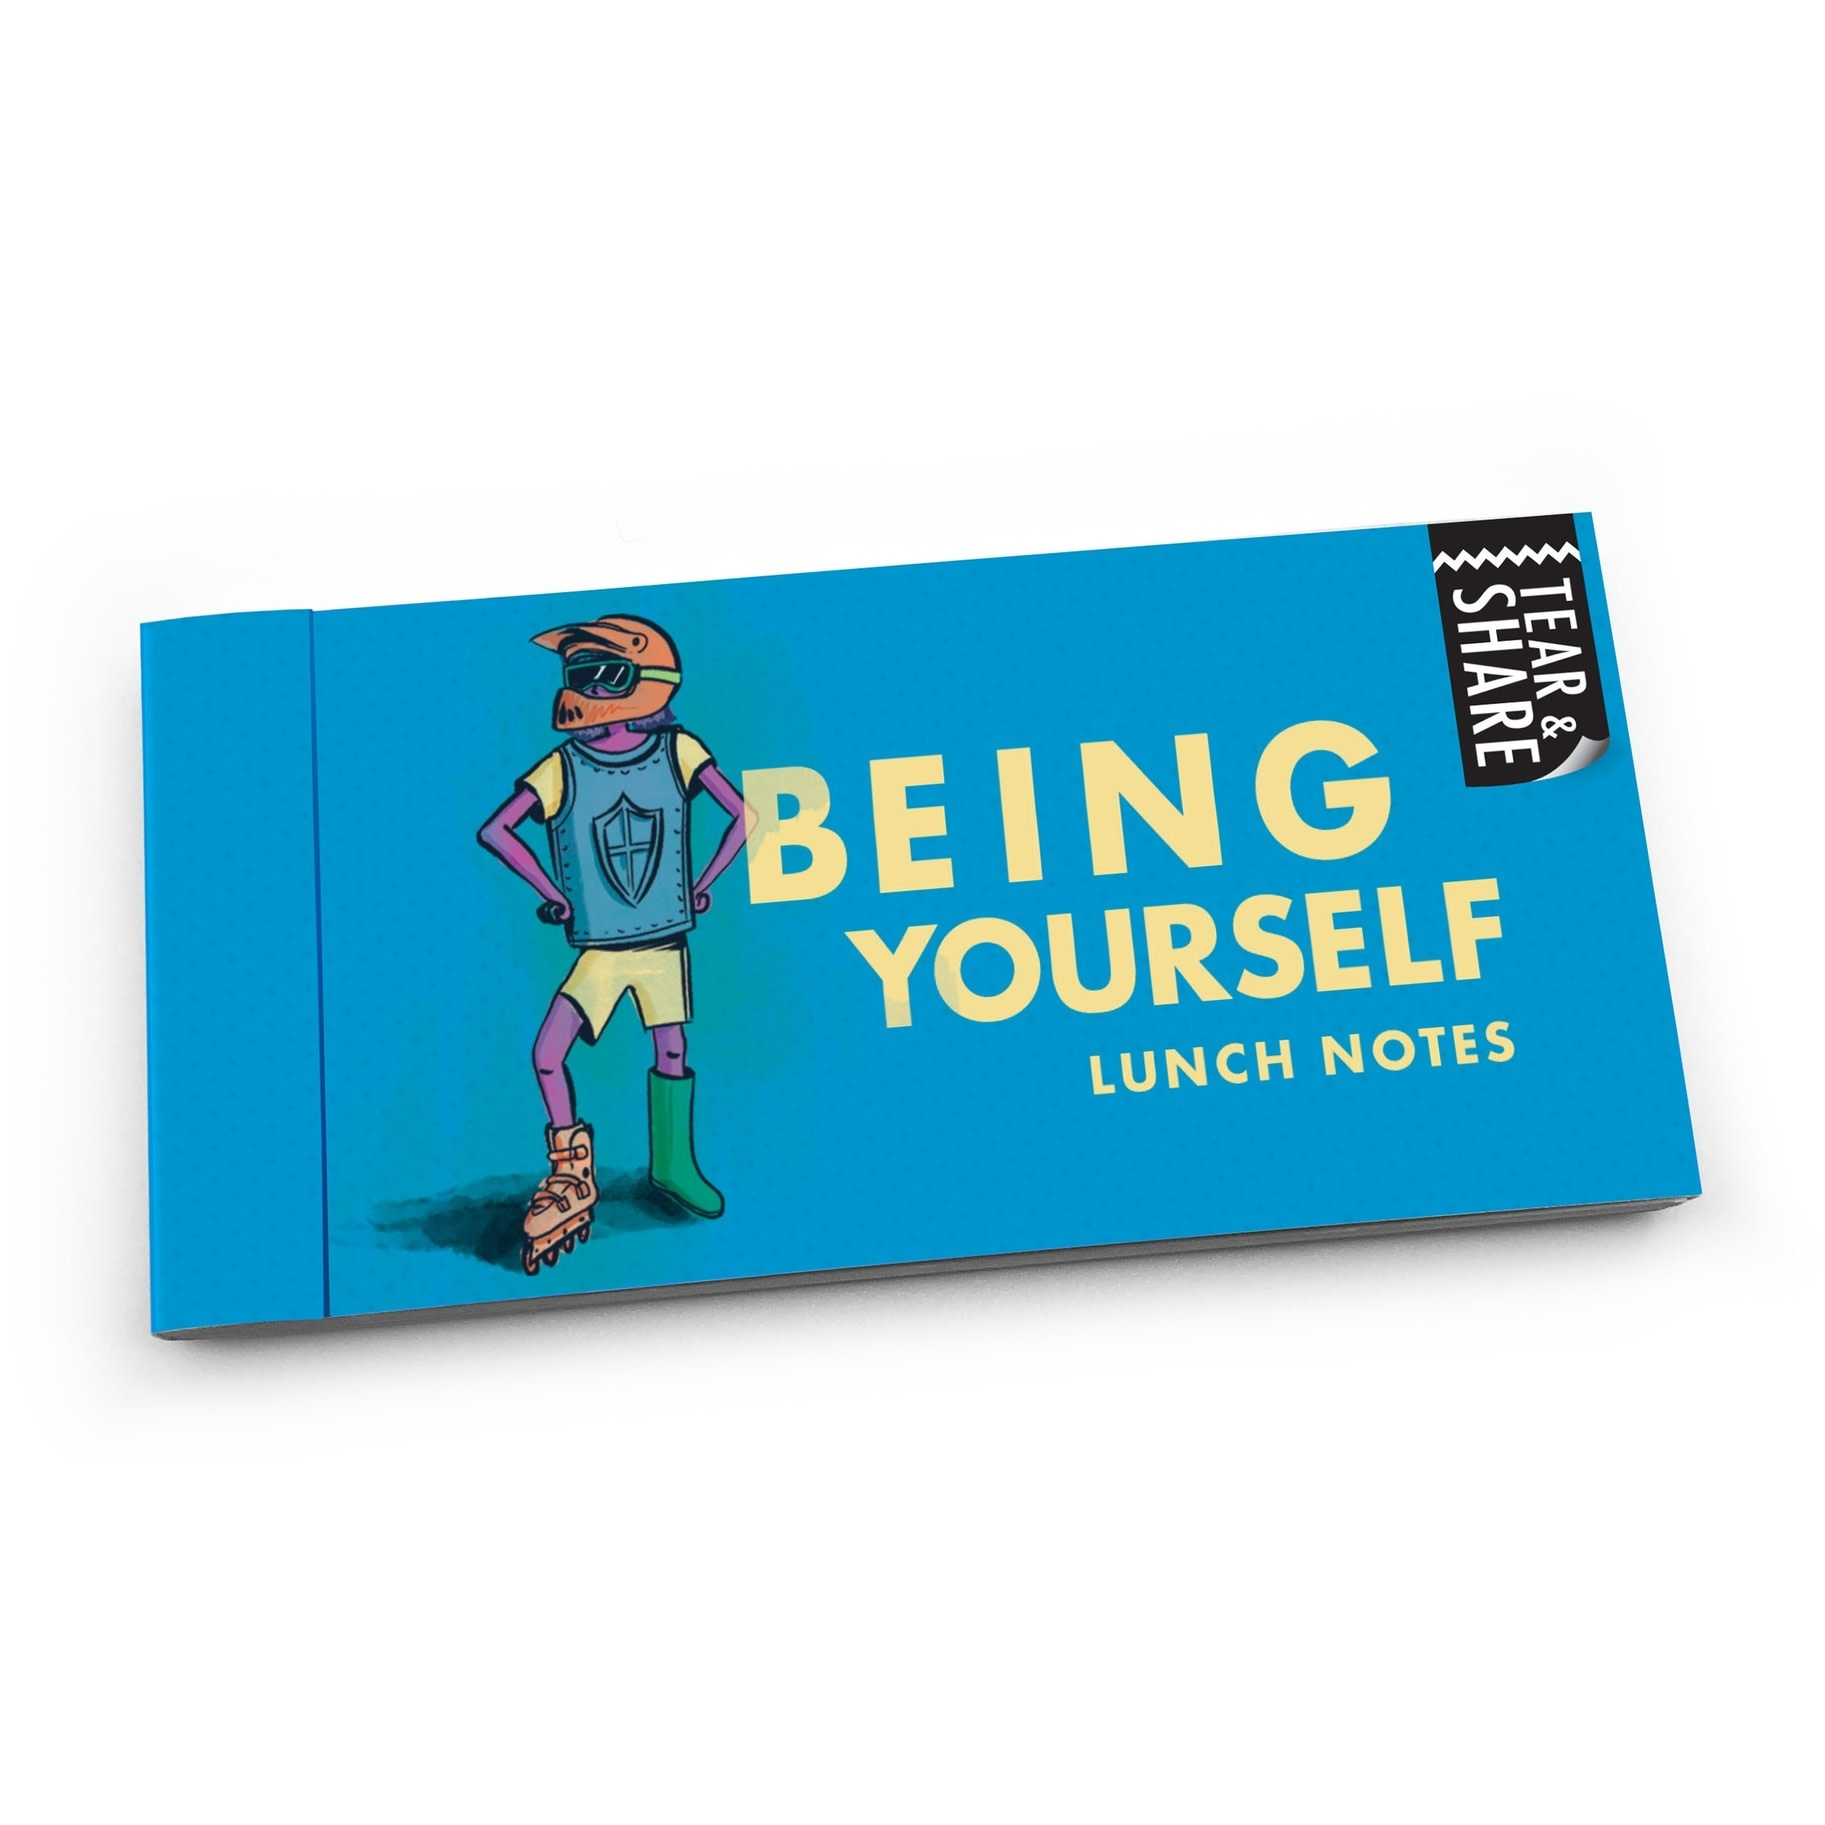 Being Yourself Lunch Notes